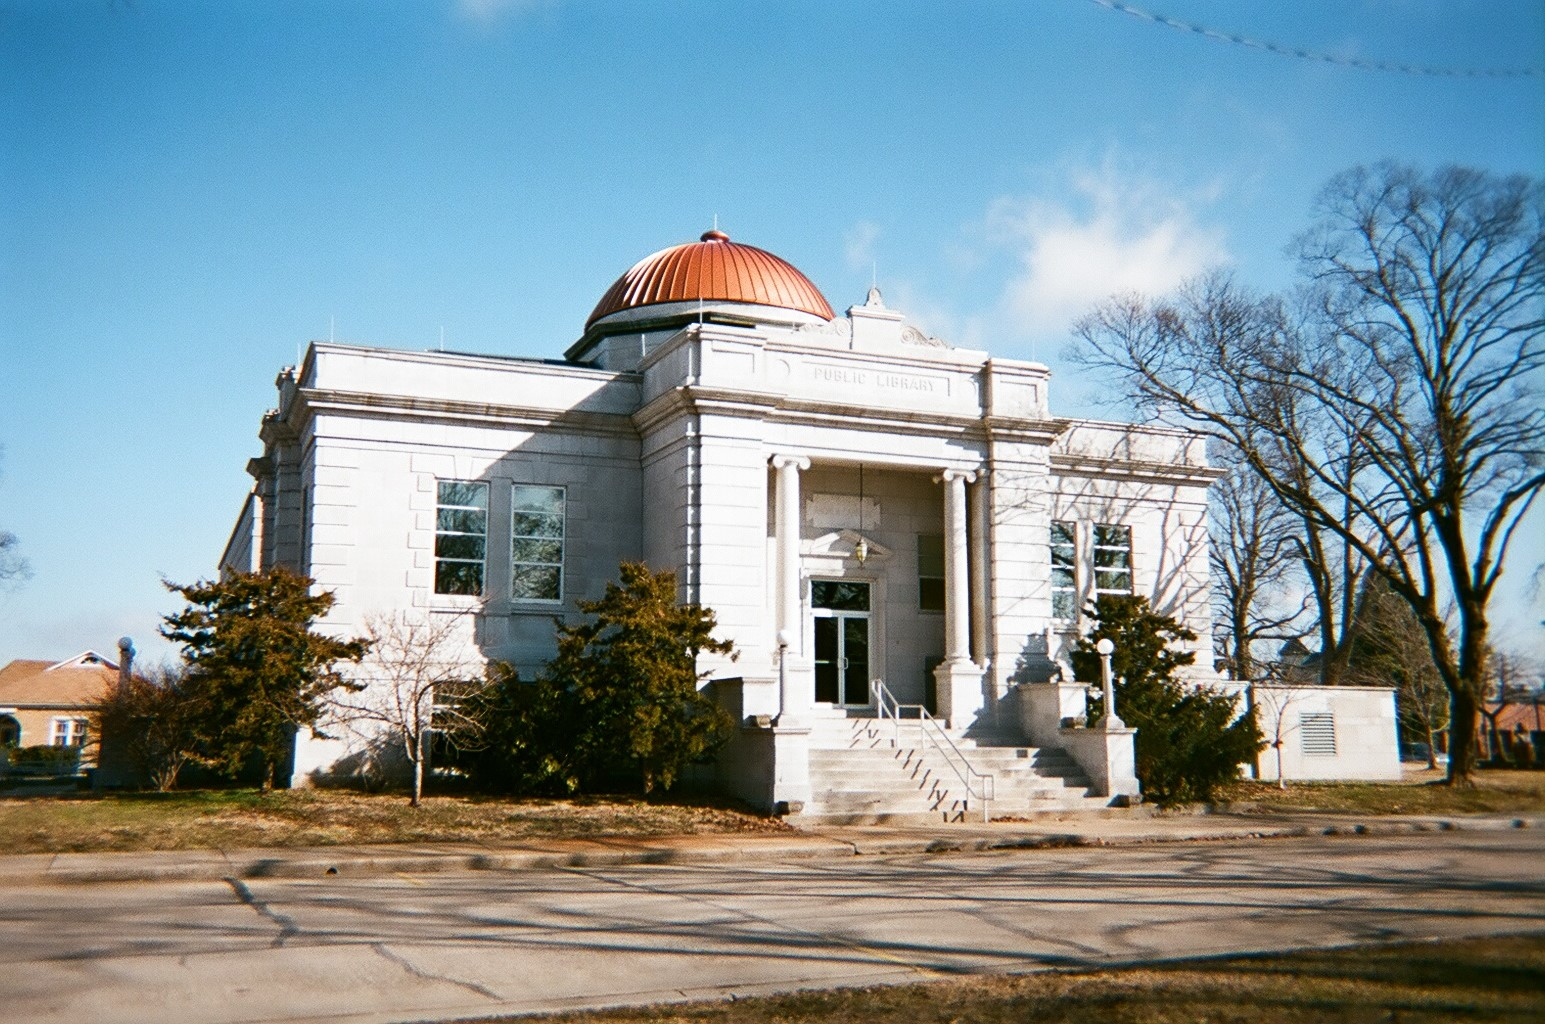 Another view of the 1905 Carthage Public Library.